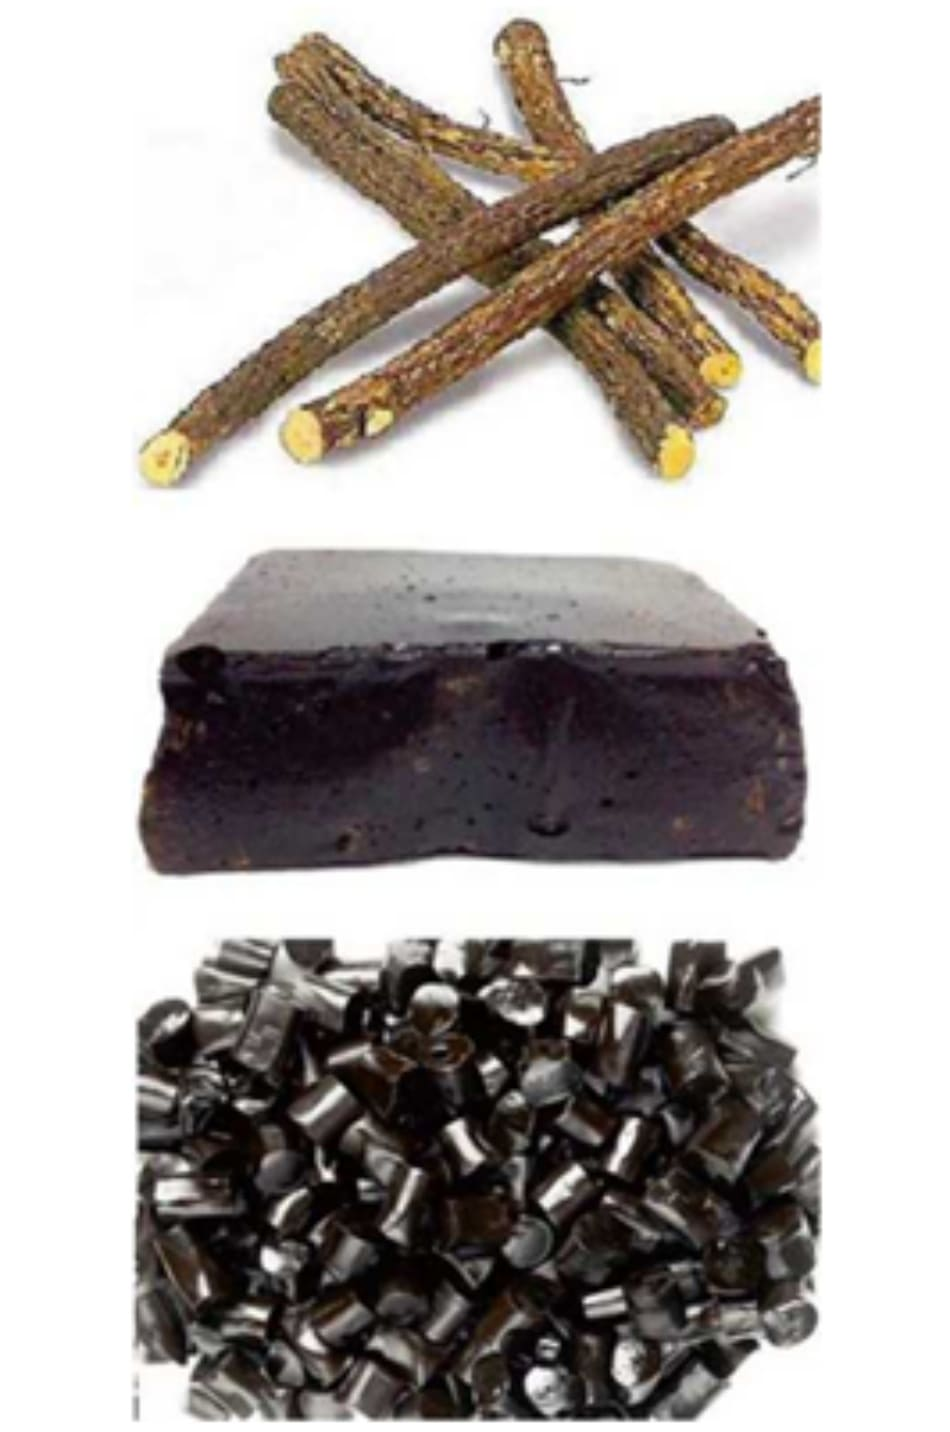 FIGURE 2.6 Various forms of liquorice that can be found in the market